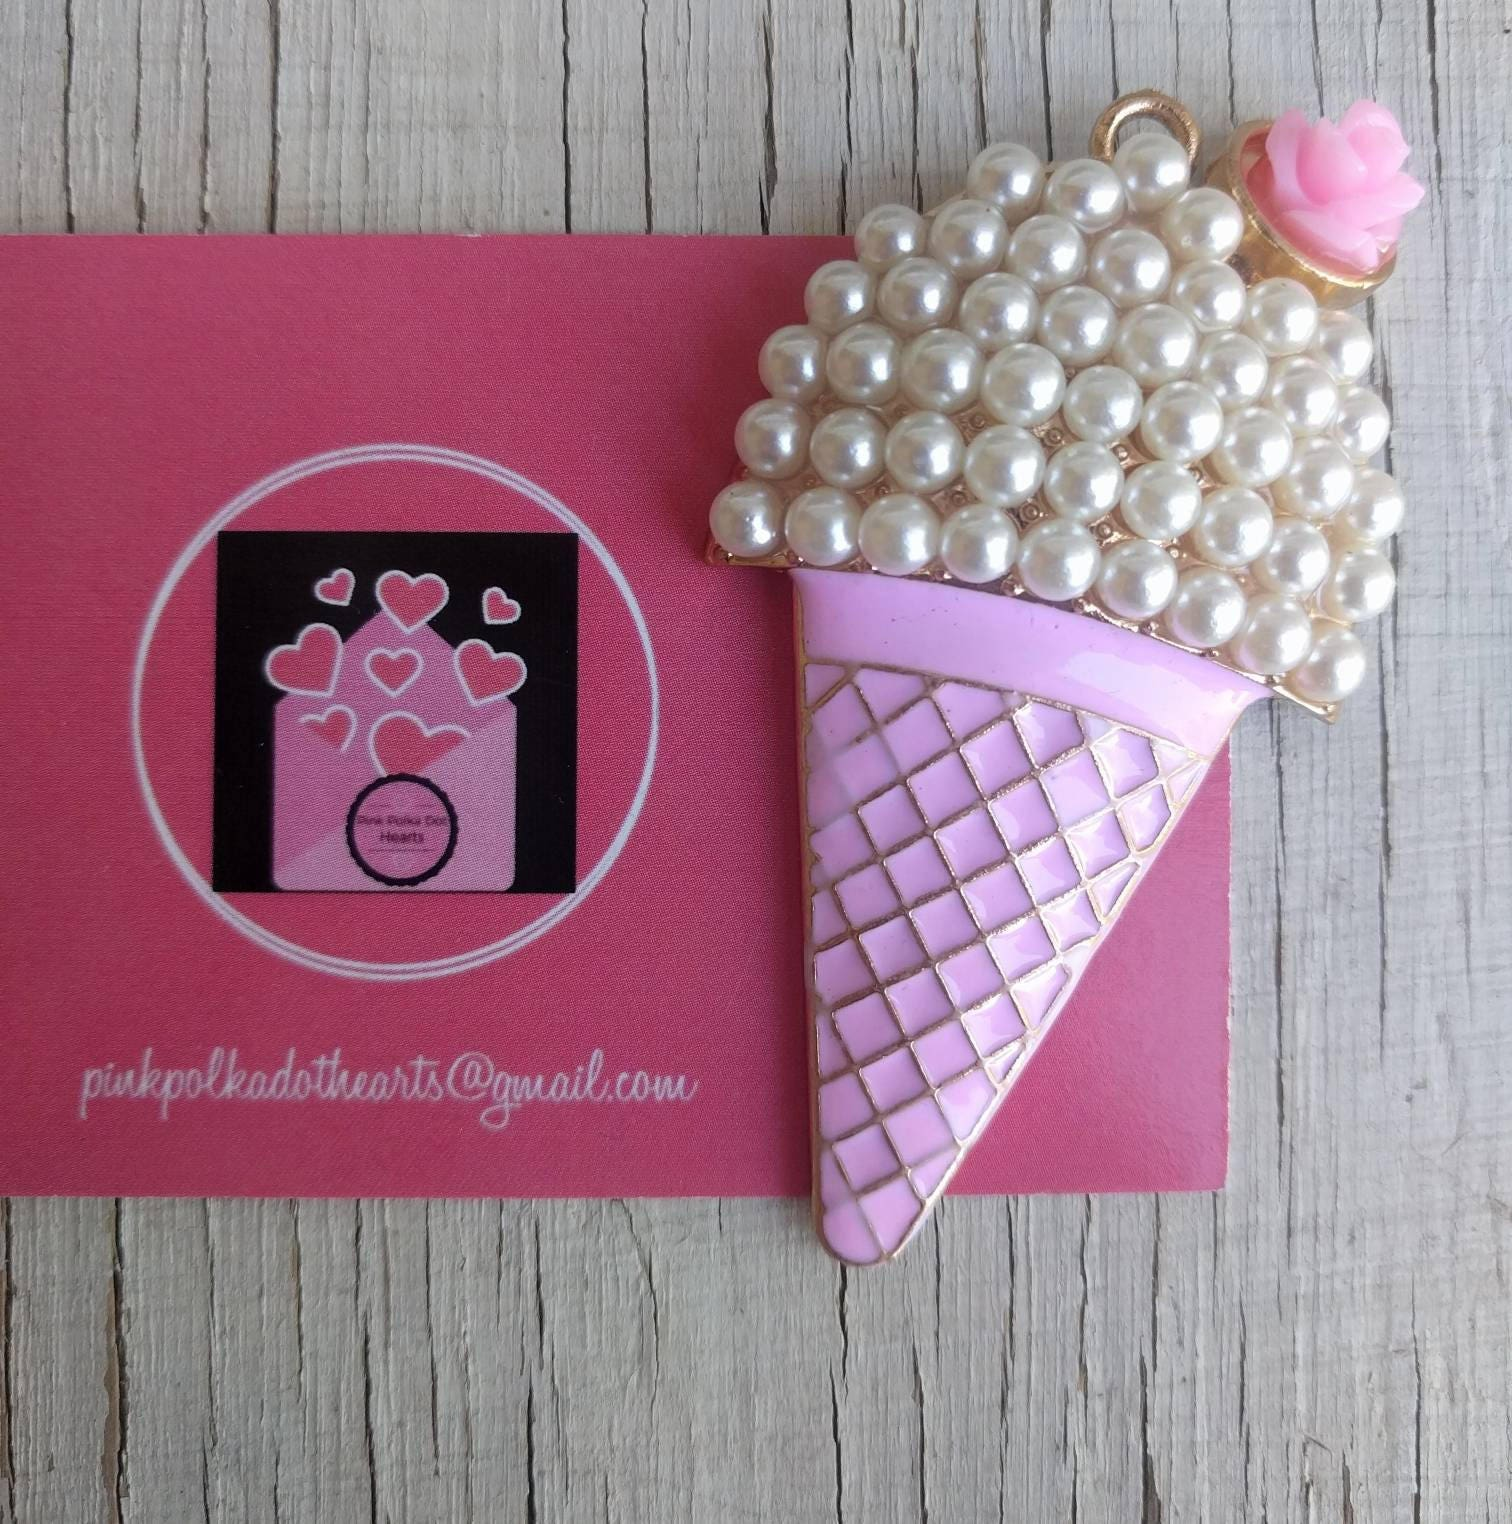 Pink and pearl ice cream cone 64mm x 34mm pendant for